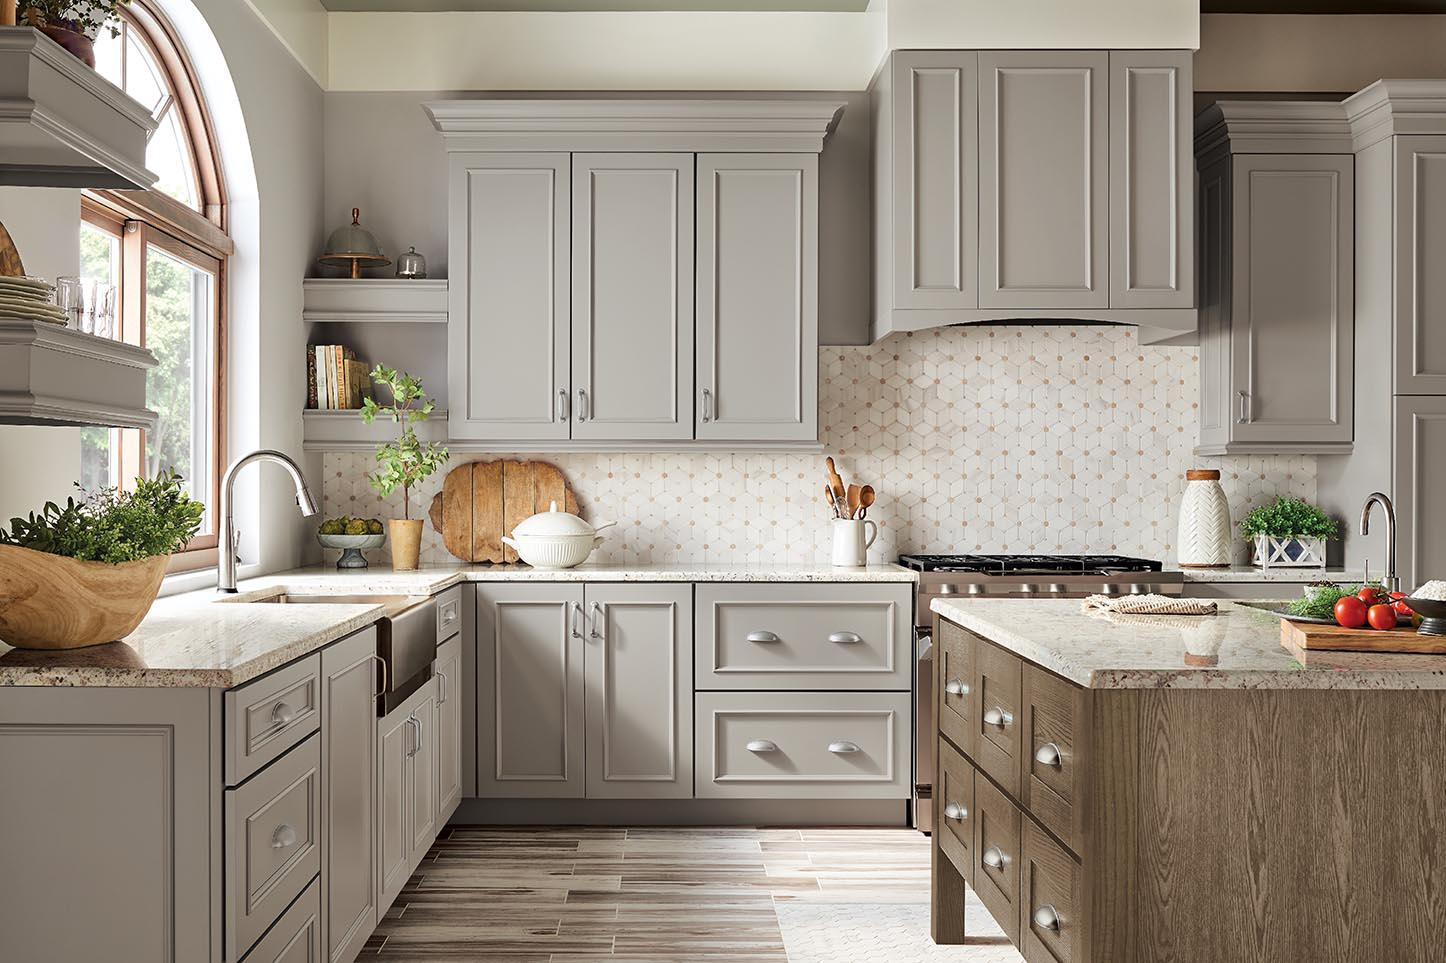 Kraftmaid Merillat Group Cabinetworks To Be Acquired By Platinum Equity Woodworking Network